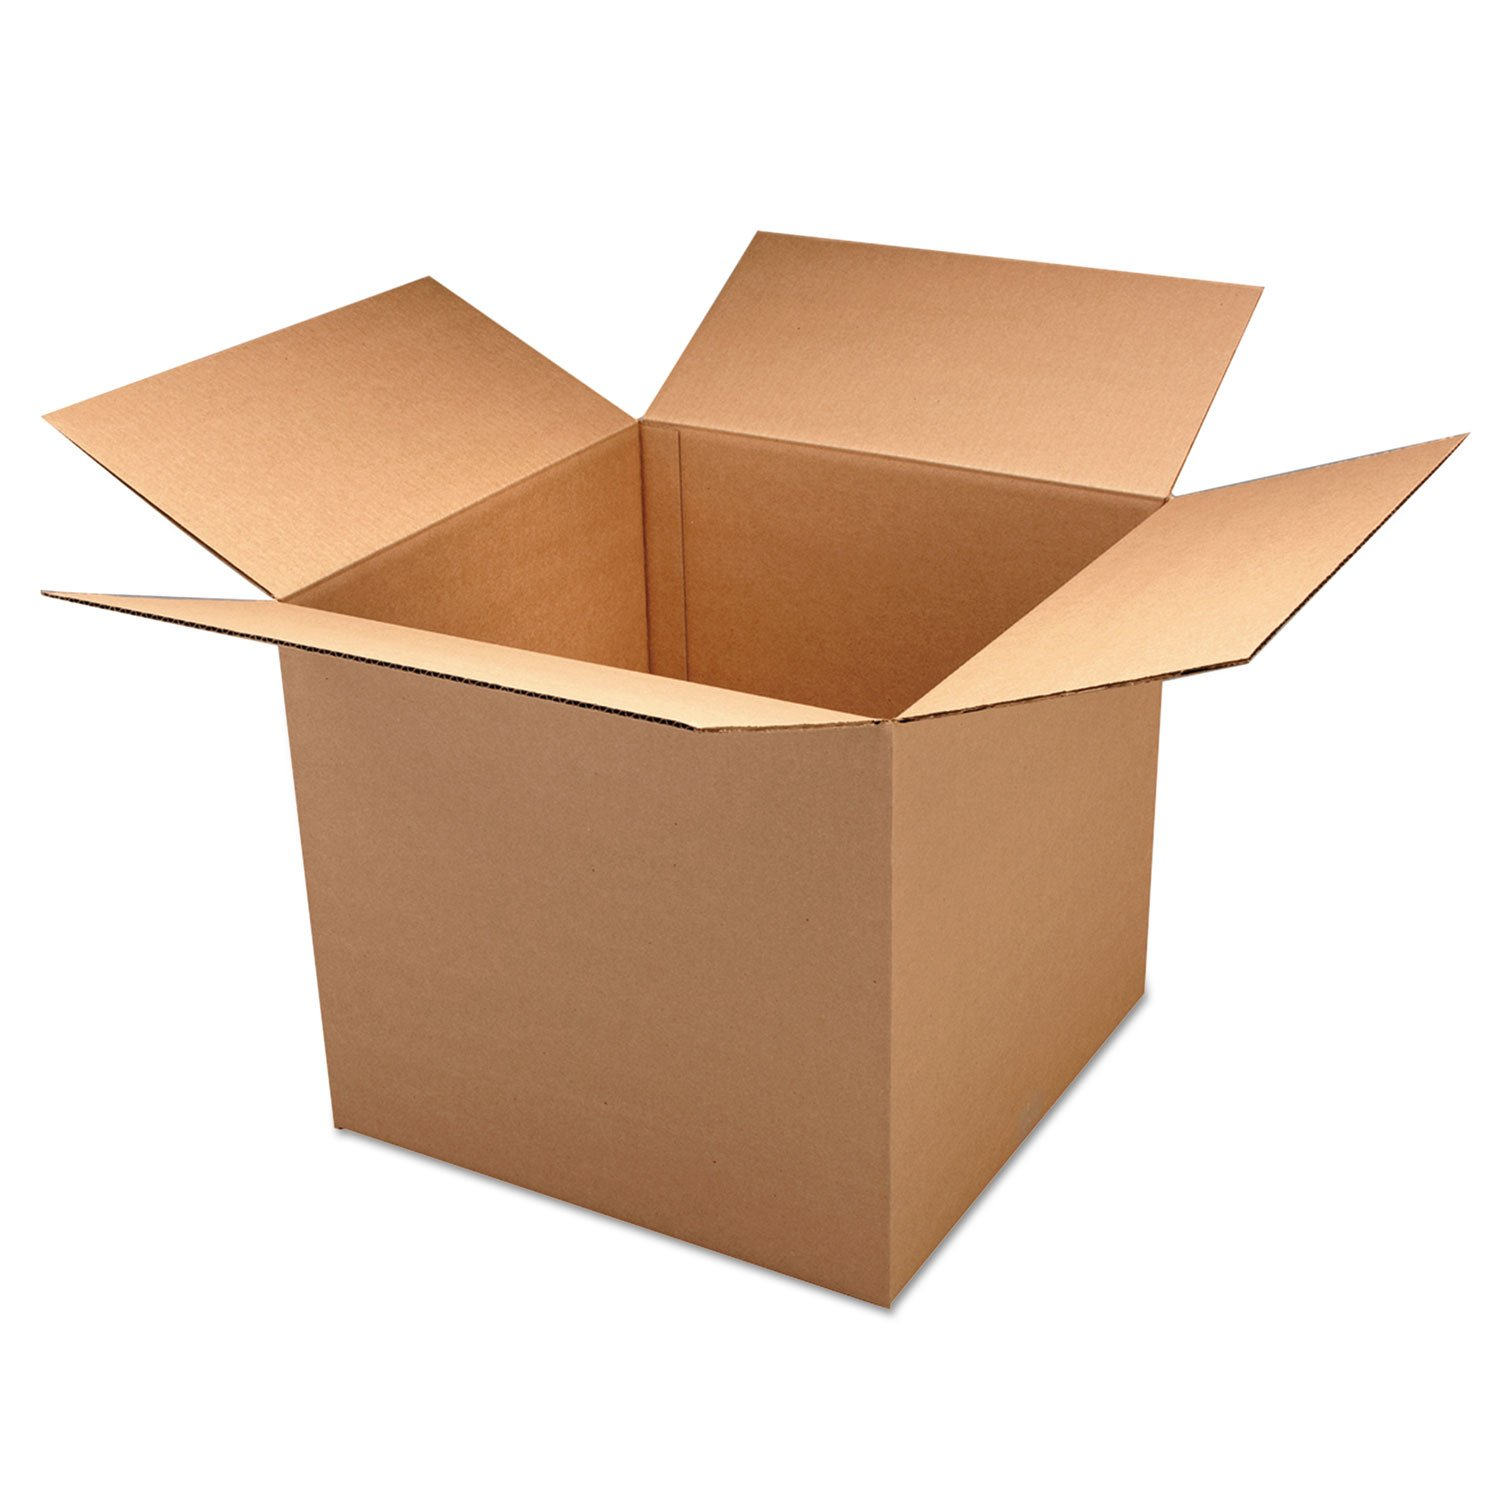 General Supply 101010DW Corrugated Kraft Double Wall Shipping Boxes, 10l x 10w x 10h, 15/BD